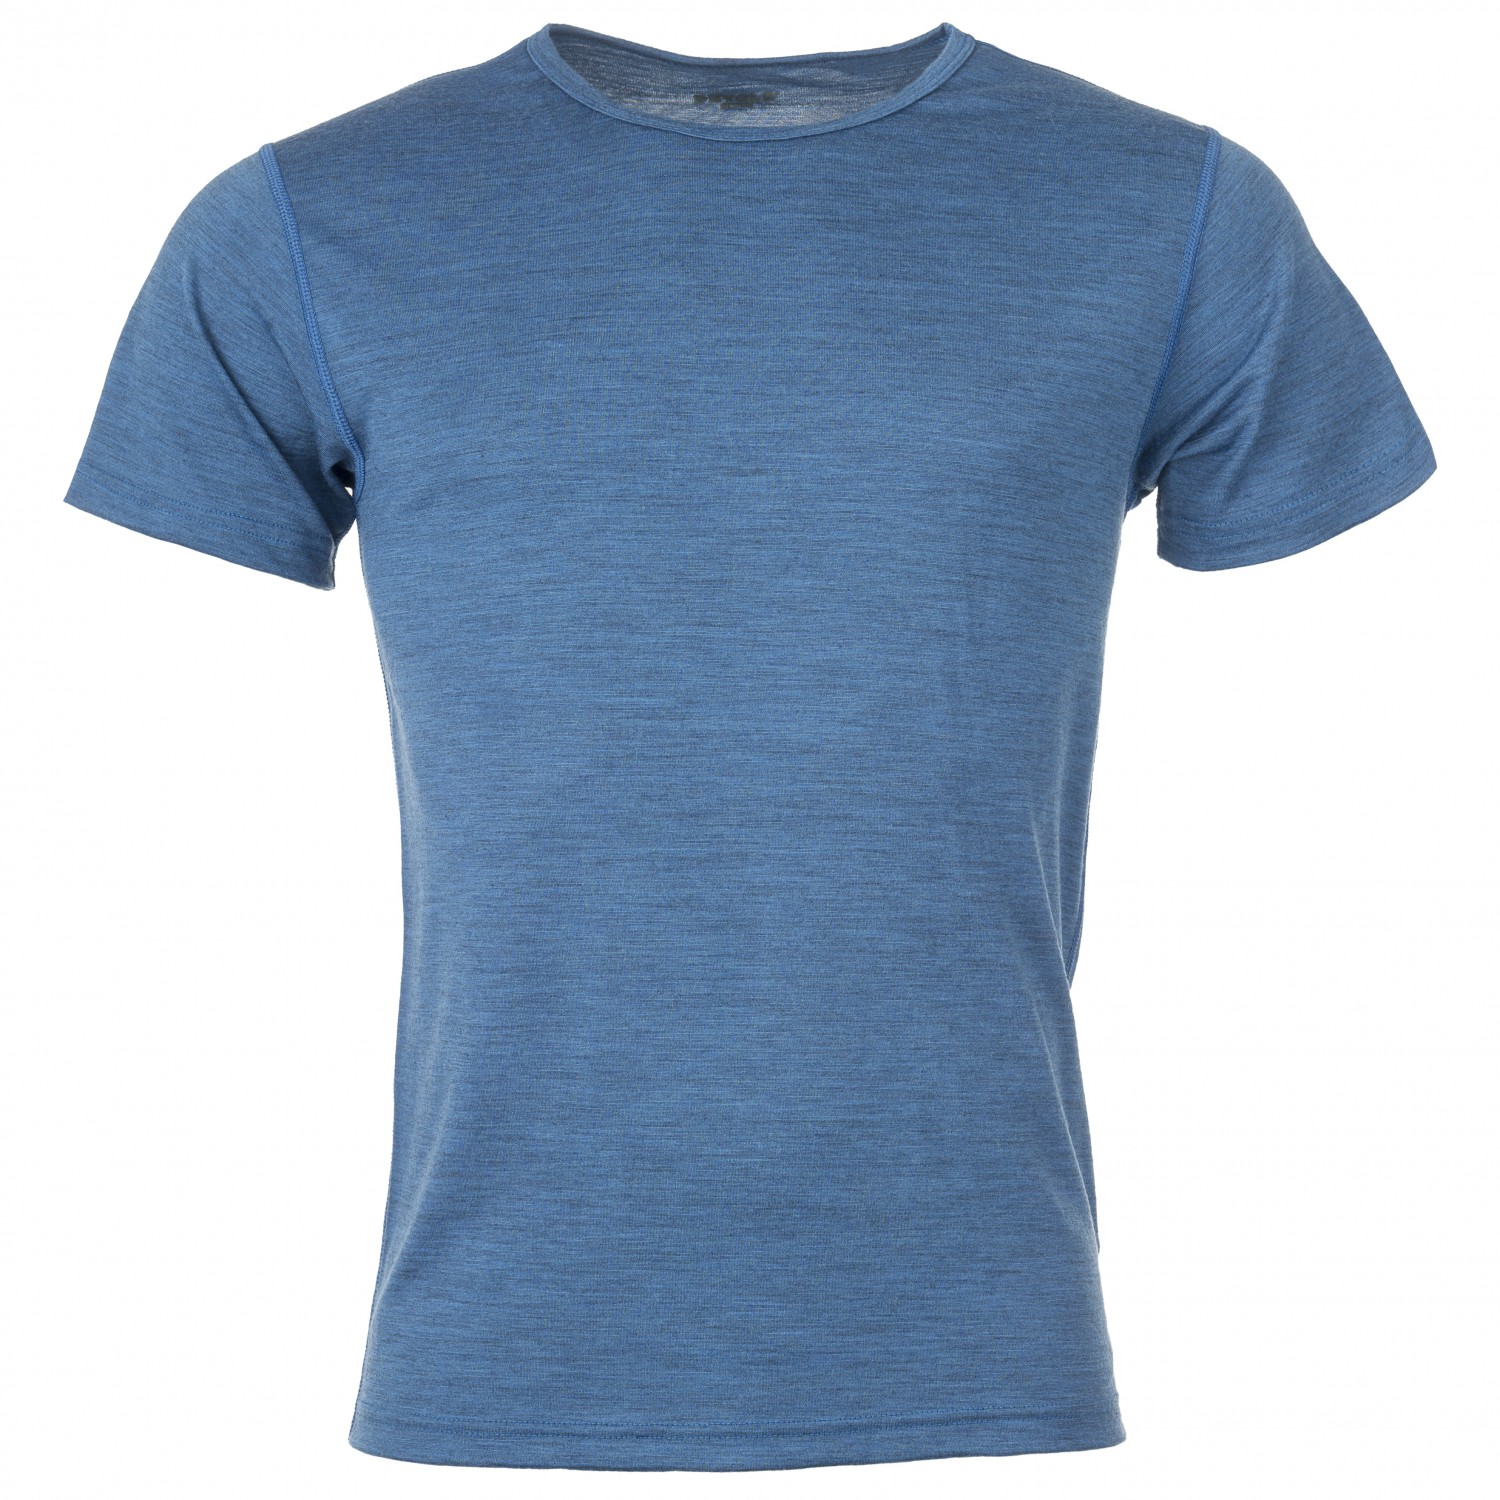 Devold Breeze T Shirt Merino undertøj Blue Melange | XL